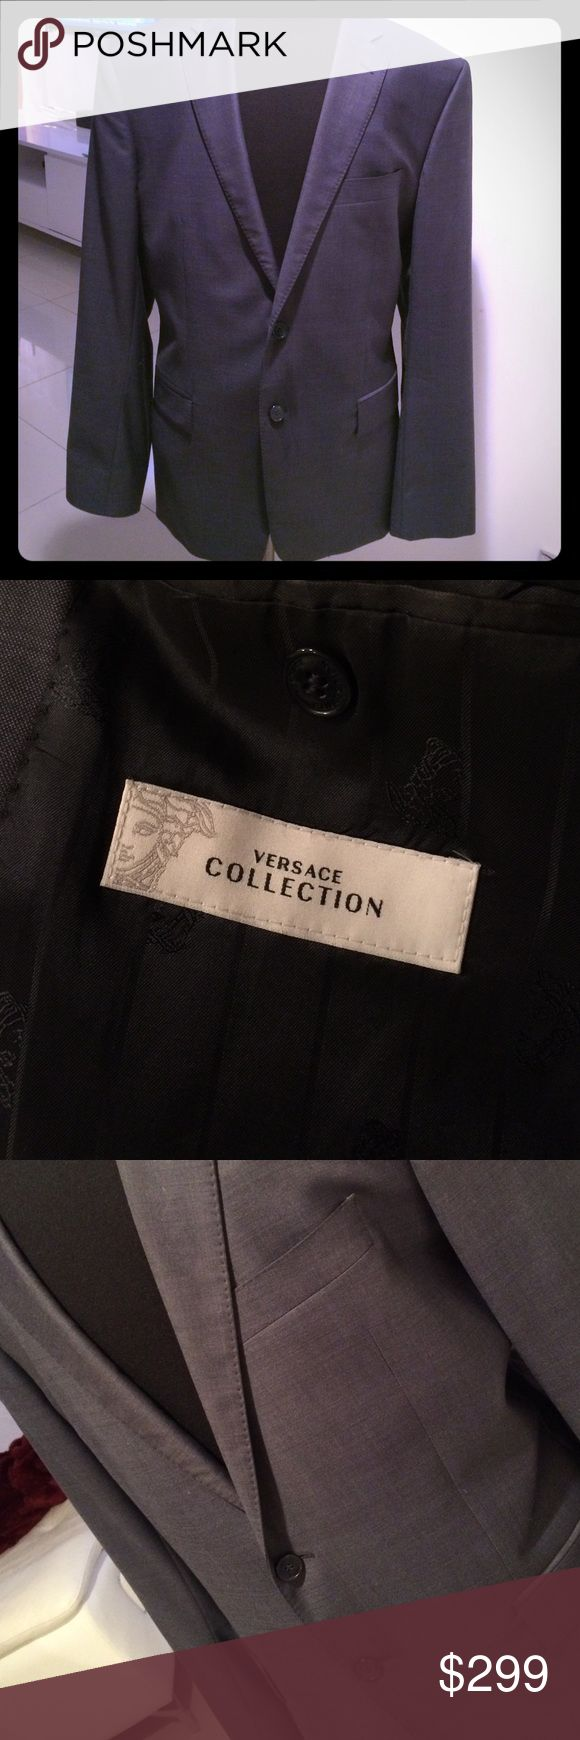 VERSACE SUIT -Worn once Classic Blue Versace suit in size 56 (or 46R) worn once.      Regular-fit   Priced to sell! Looks like charcoal grey color on.   Cheaper on merc Versace Suits & Blazers Suits